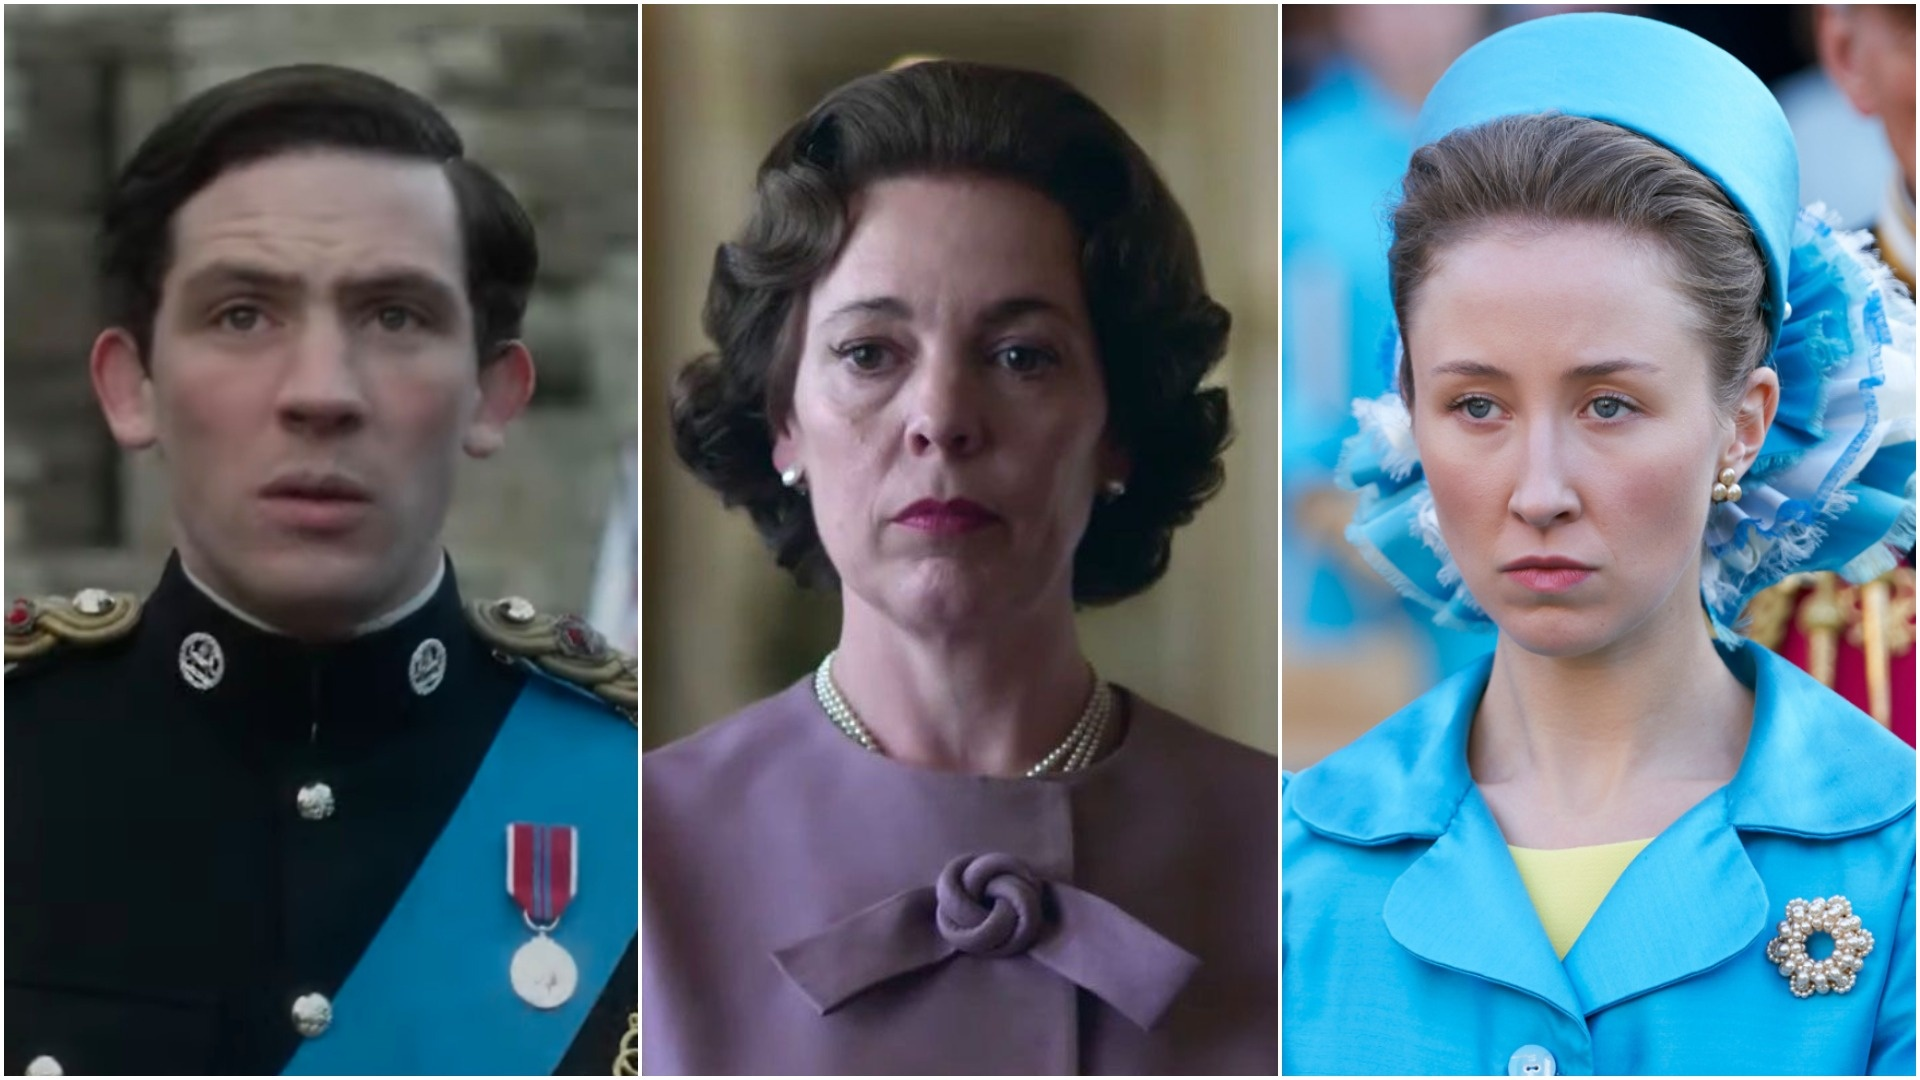 Which Drama School Unites These 3 Stars of 'The Crown'?